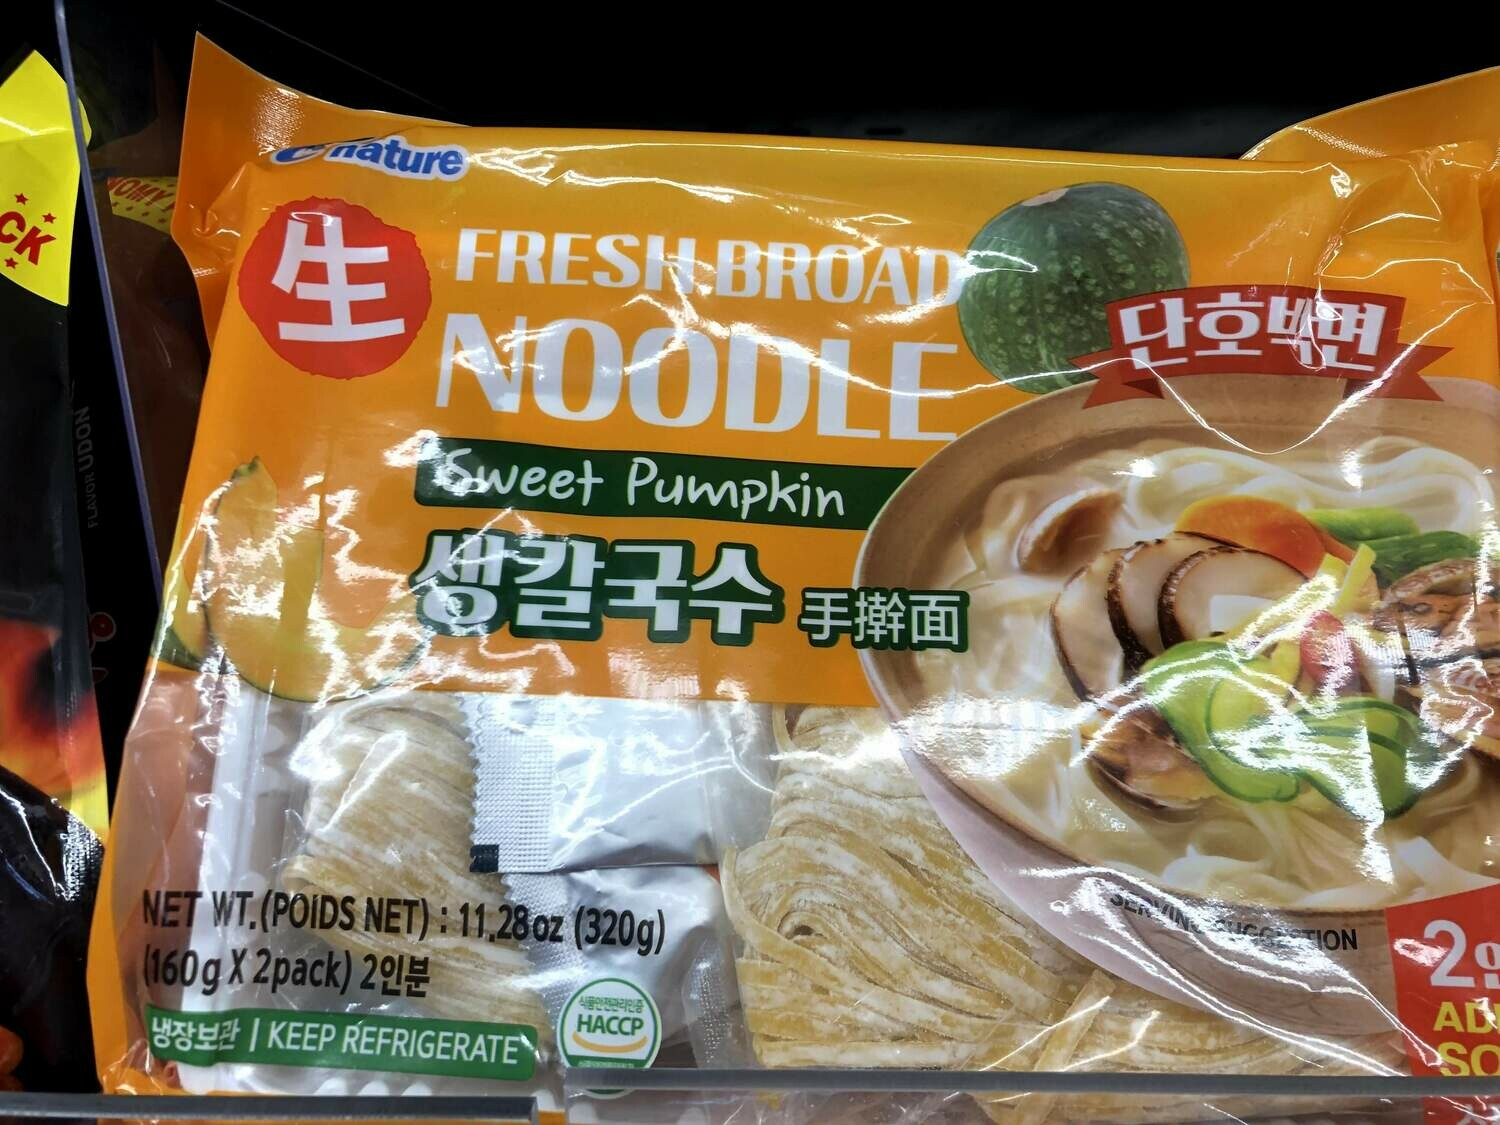 【RBF】Fresh Broad Noodle 手擀面320g